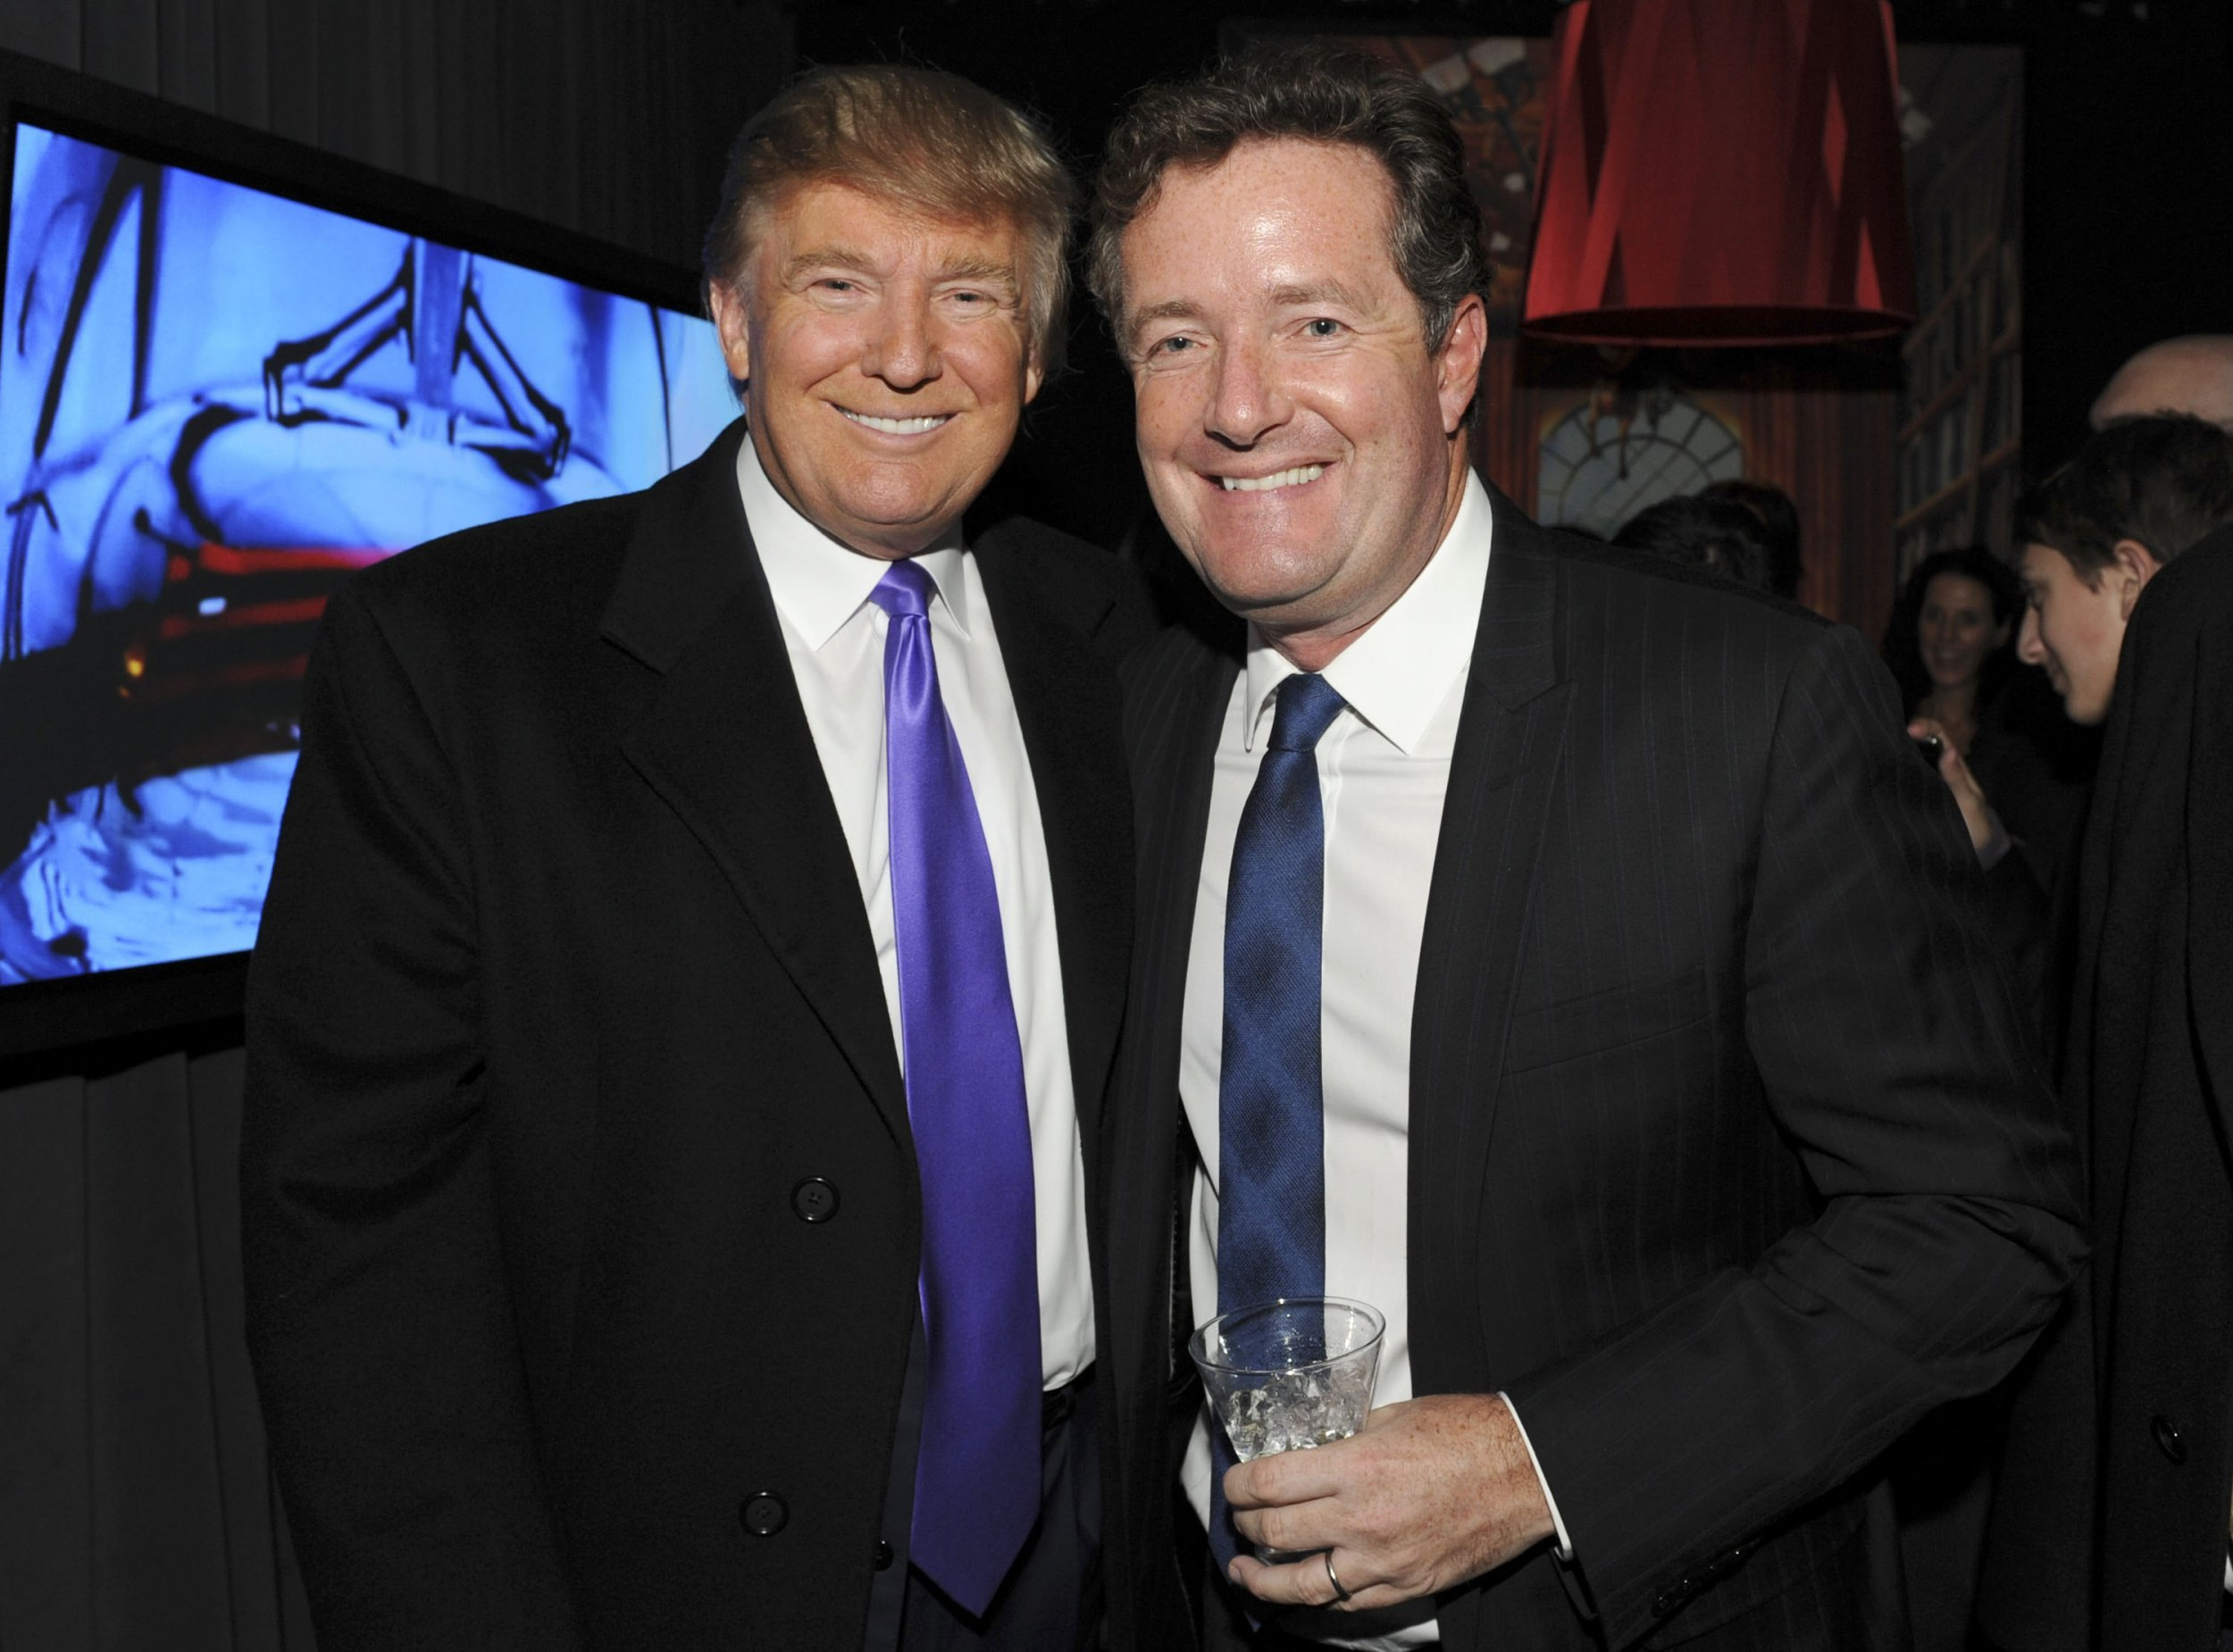 Piers Morgan wants Donald Trump to take over Brexit